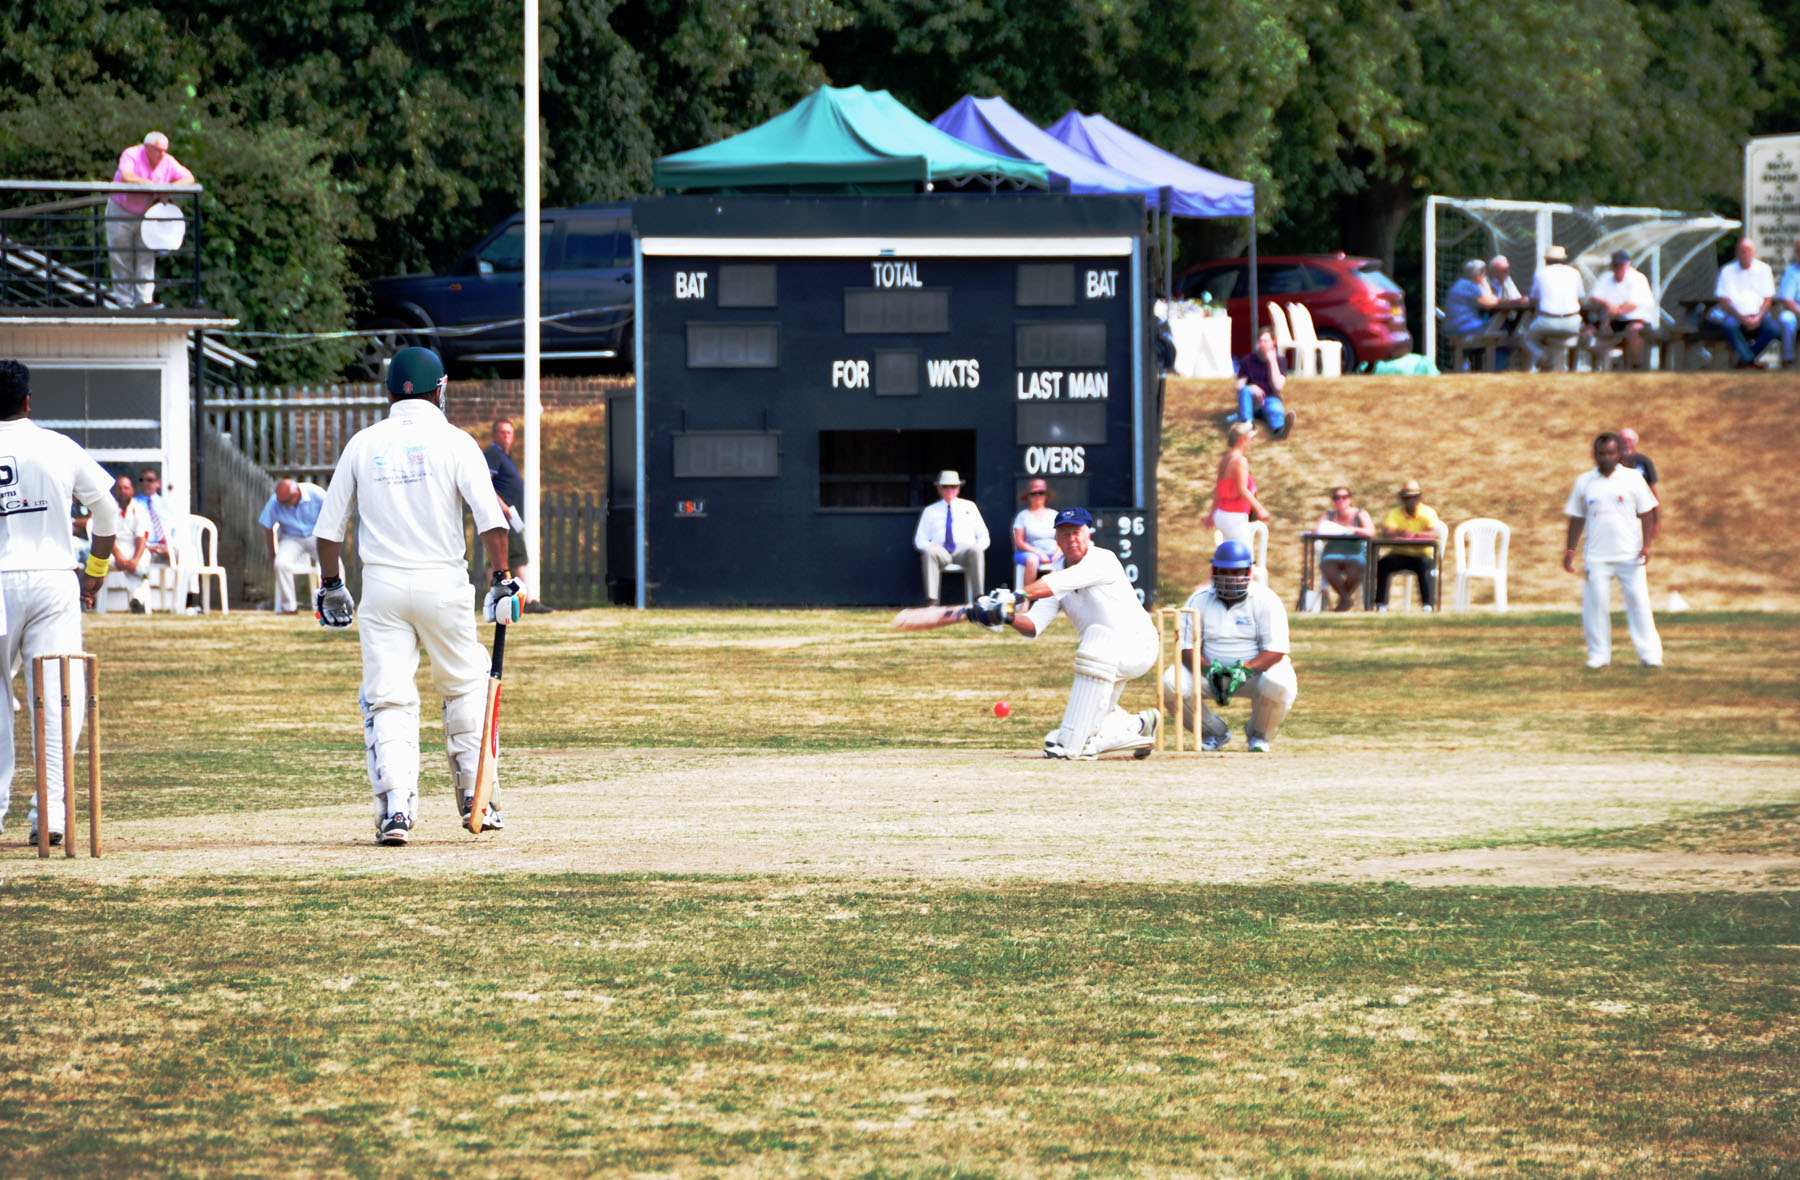 2018 Mark Inter Provincial Cricket Tournament